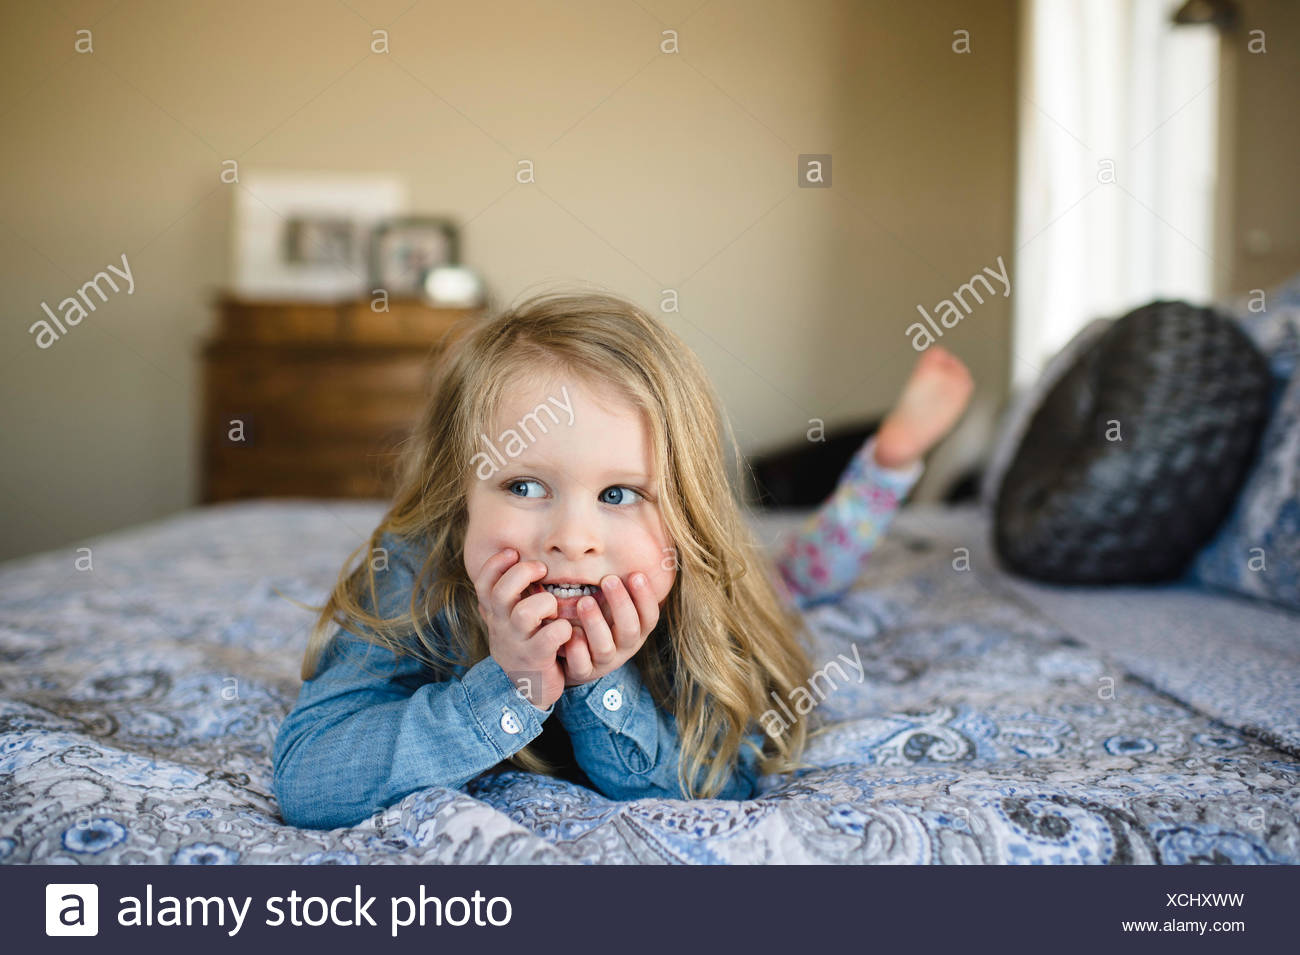 Girl lying on bed looking sideways - Stock Image